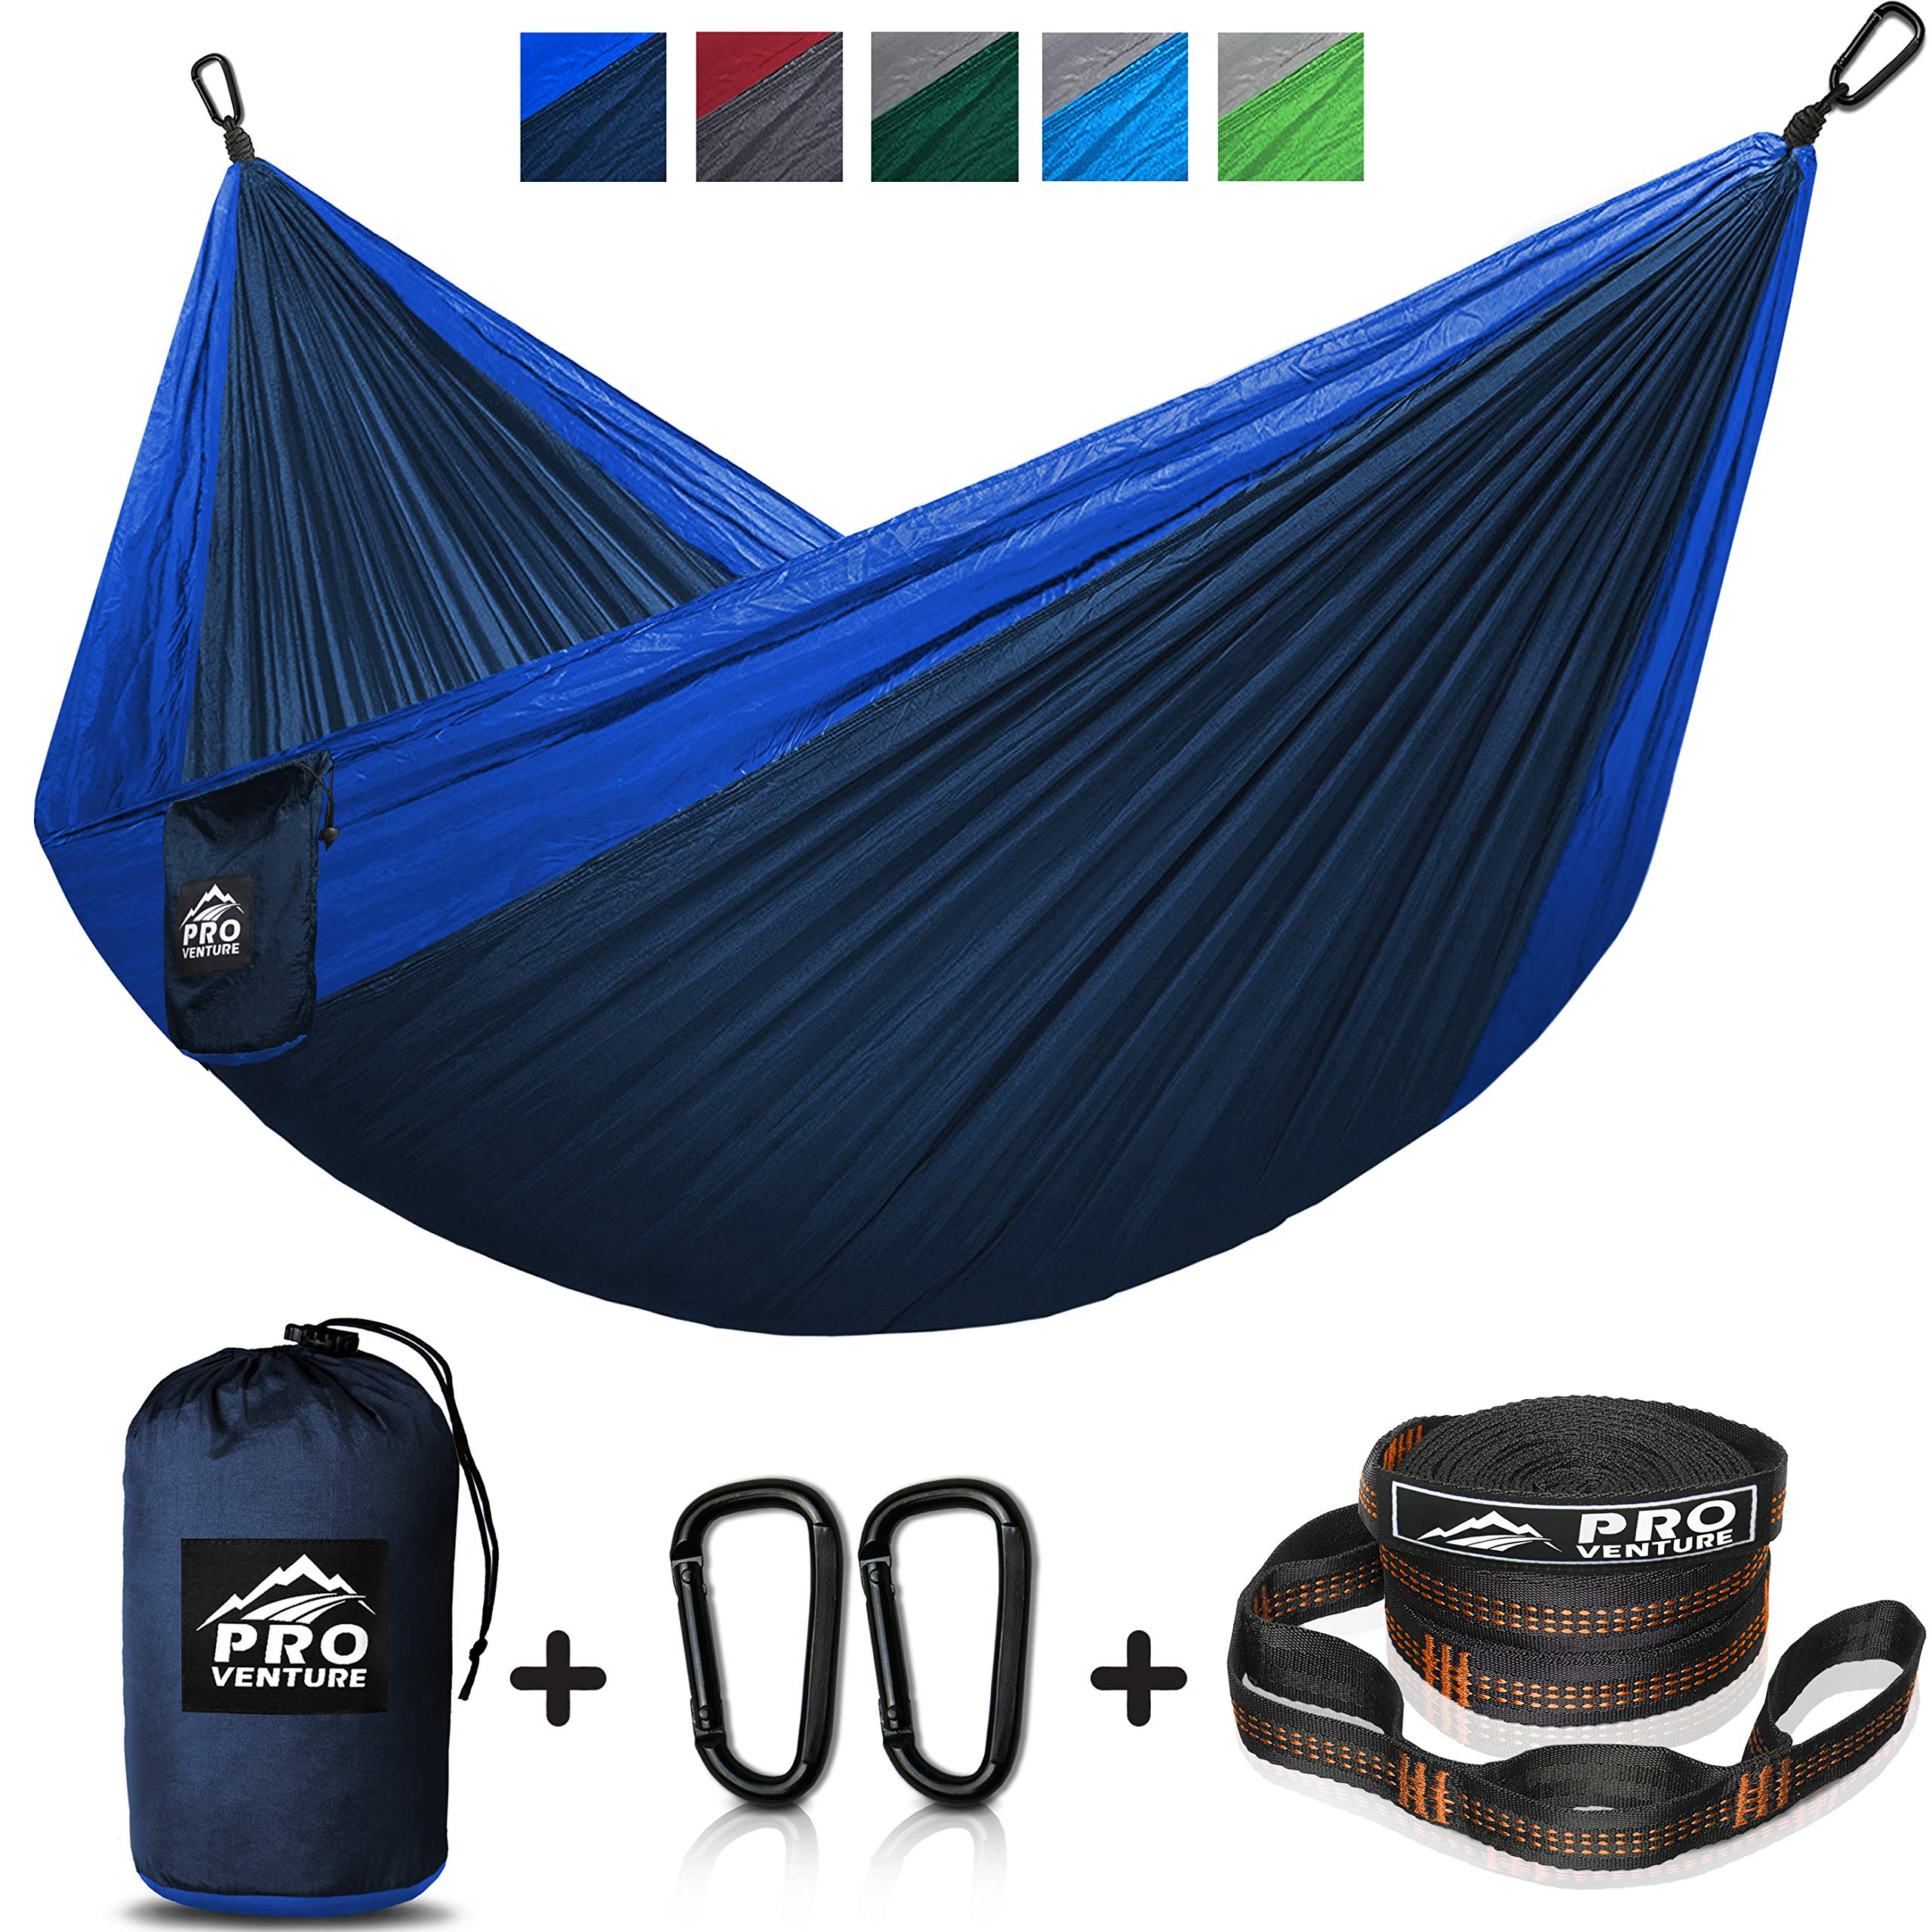 Double and Single Camping Hammocks - Hammock with Free Premium Straps & Carabiners - Lightweight and Compact Parachute Nylon. Backpacker Approved and Ready for Adventure! by Pro Venture